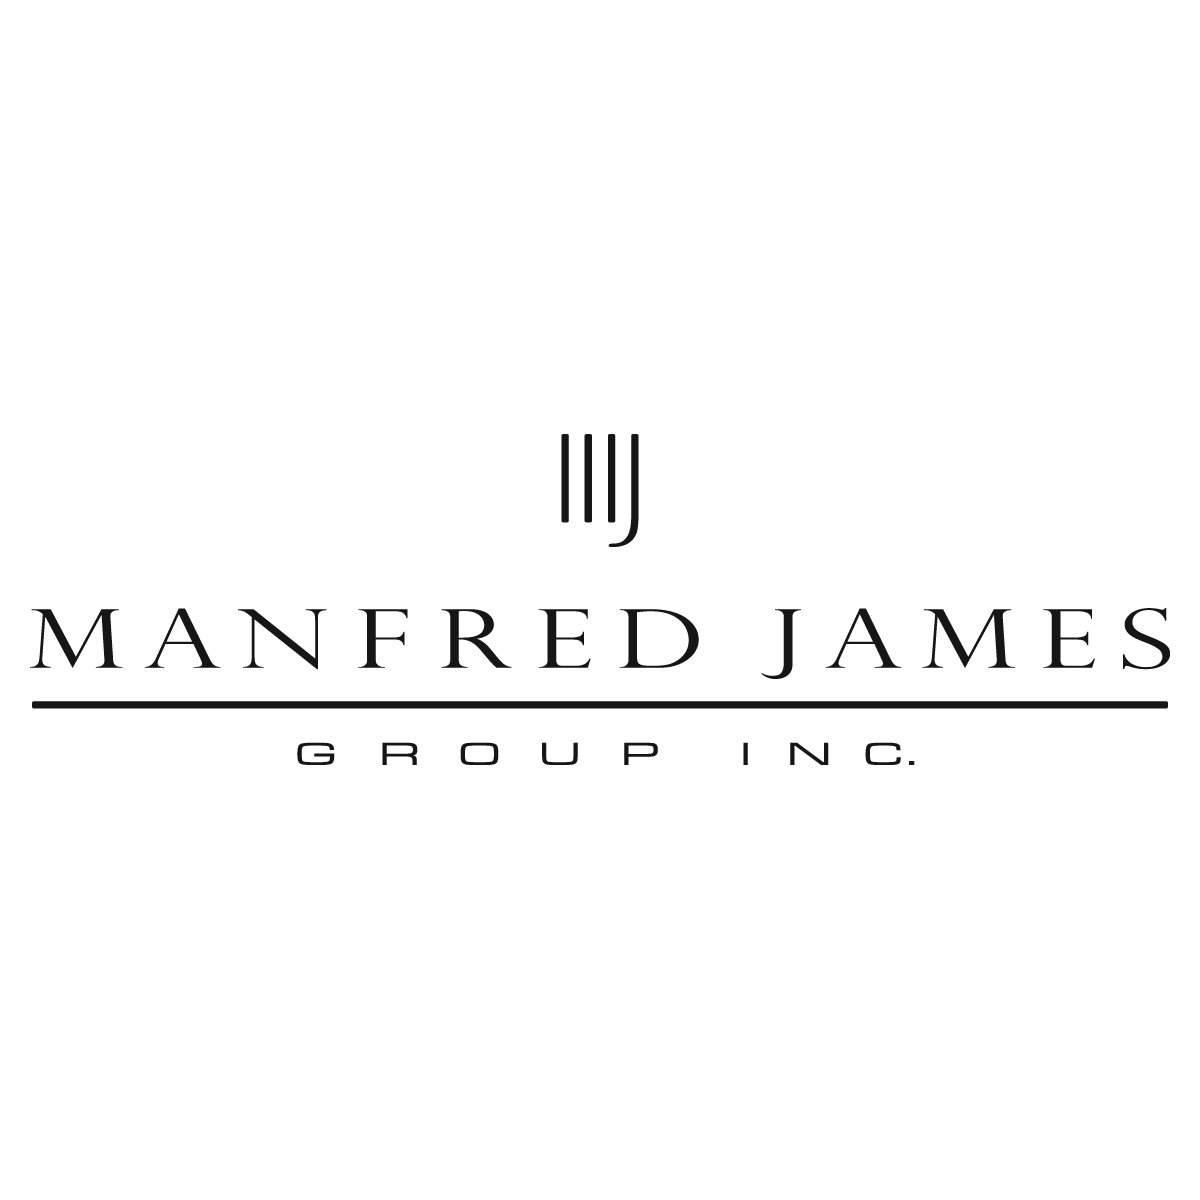 Manfred James Group Inc. (O&G Services)